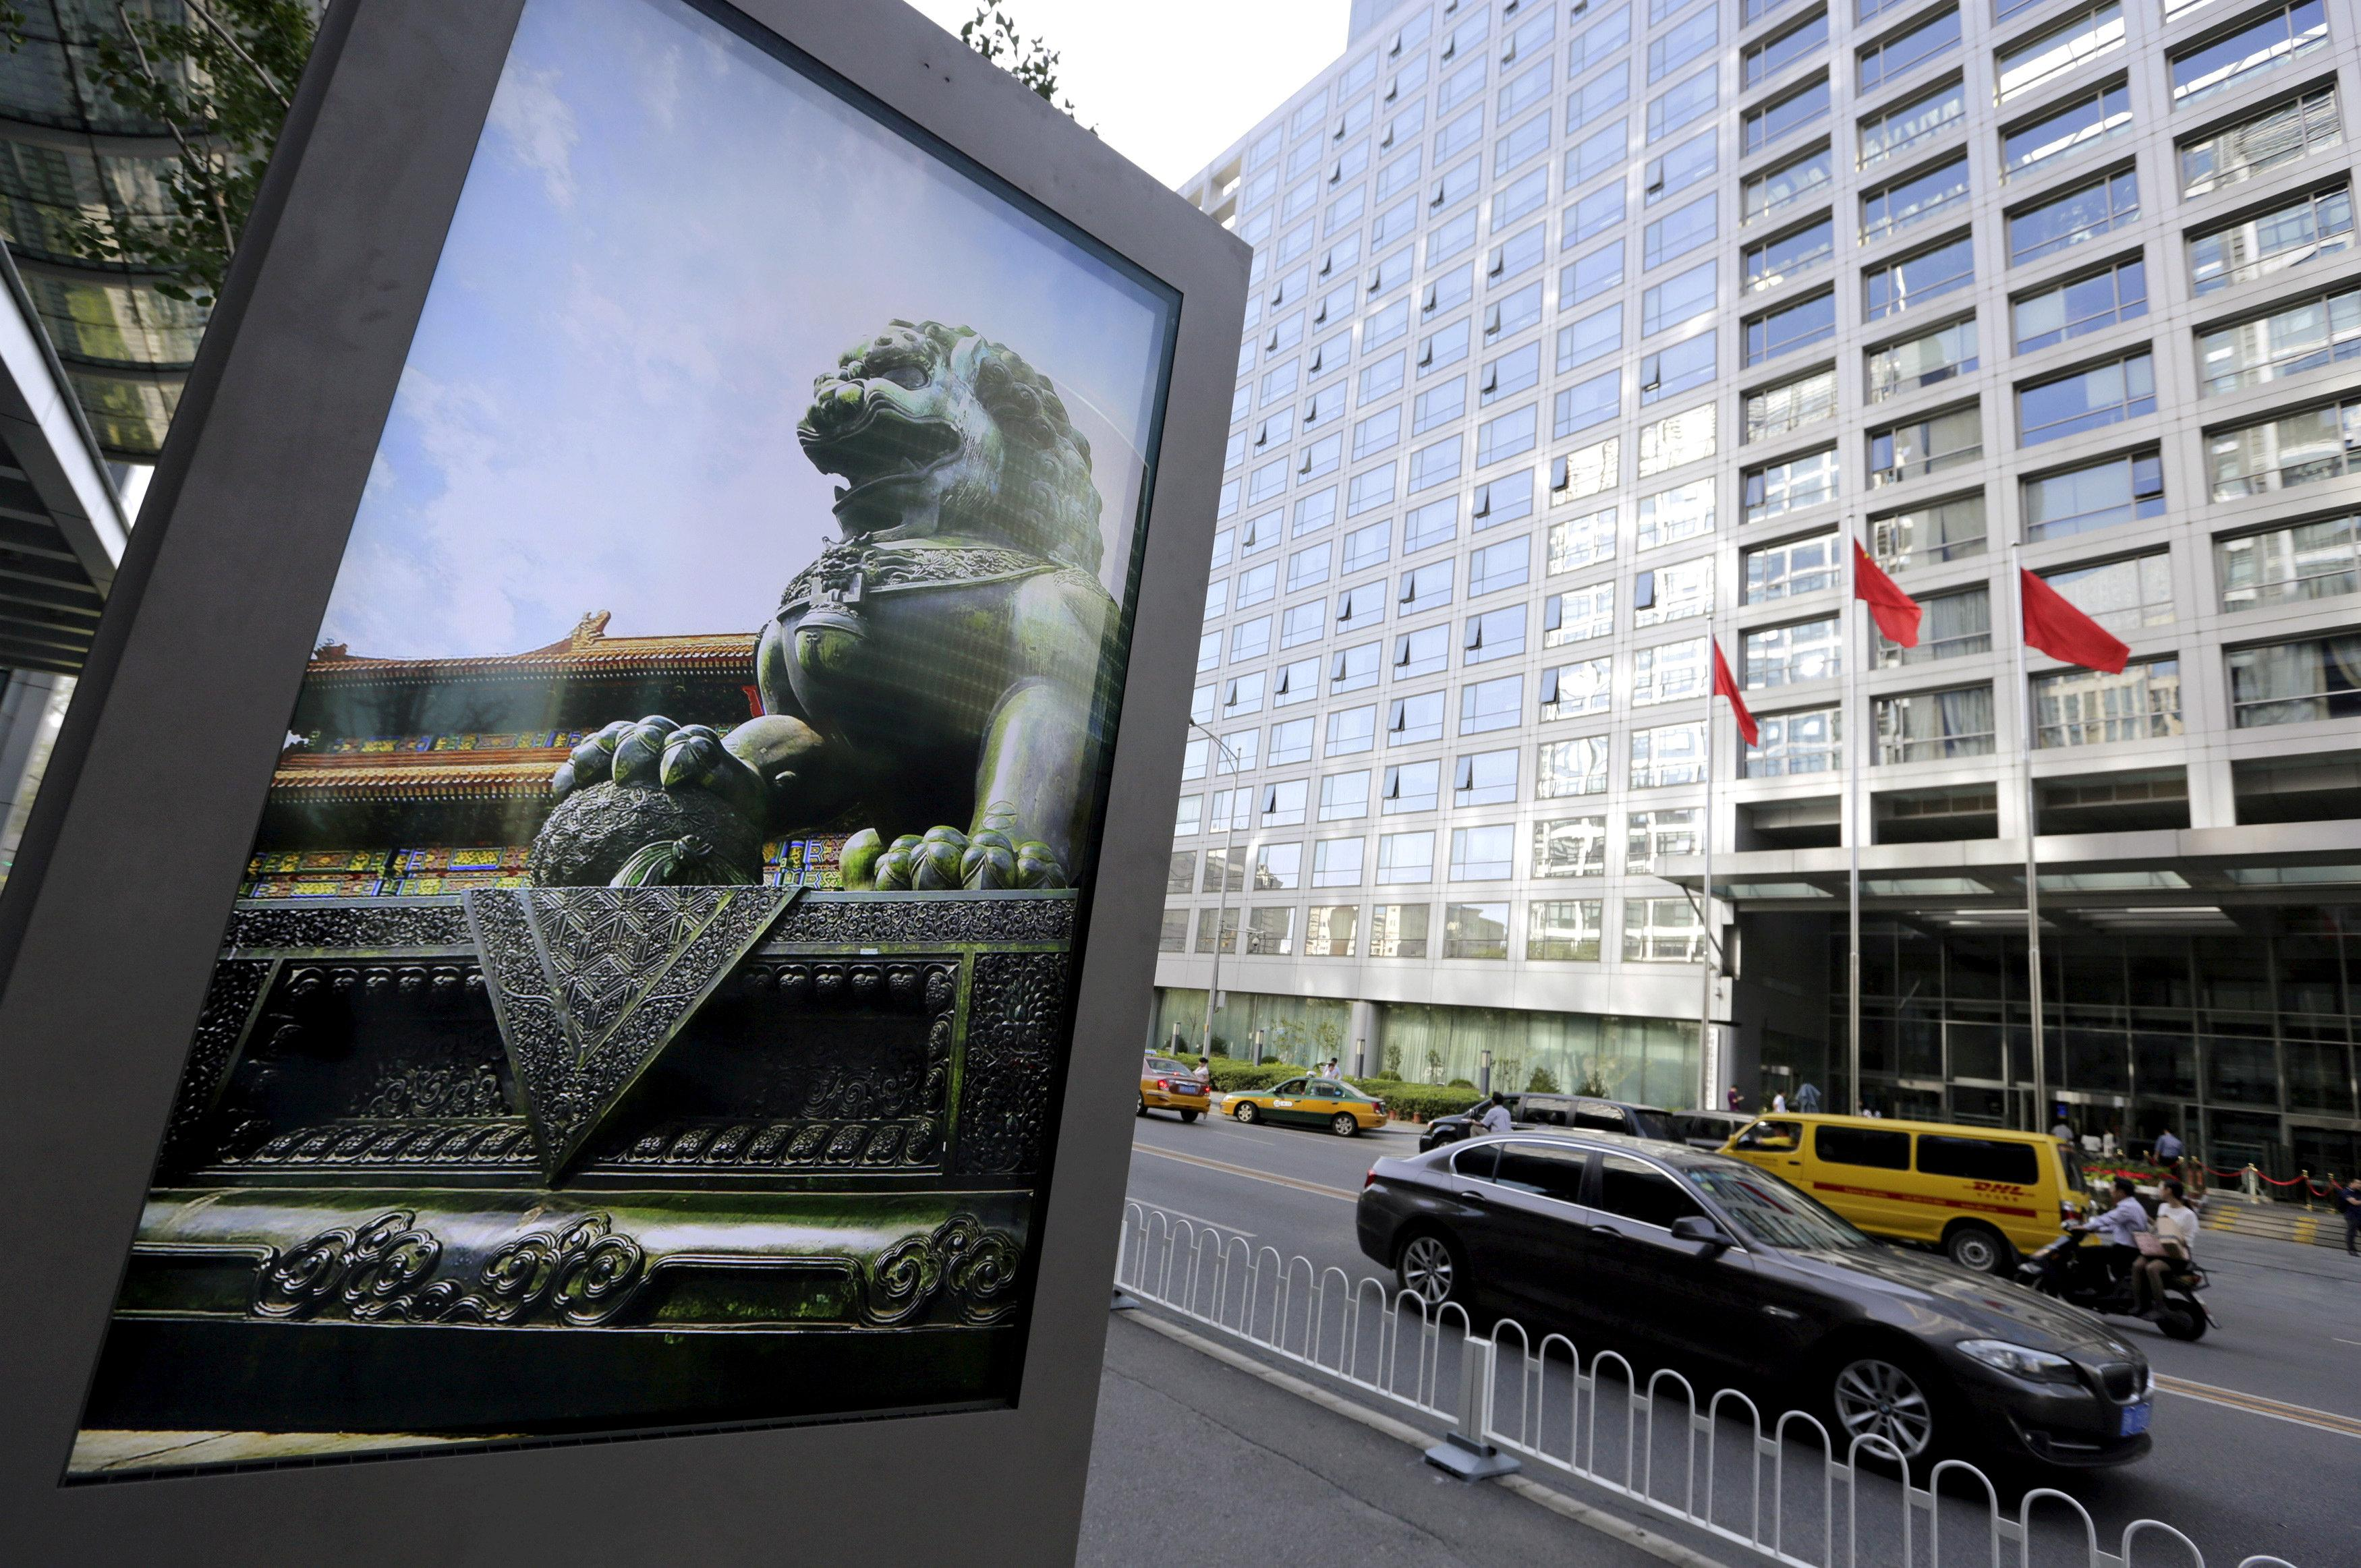 An advertising board (L) showing a Chinese stone lion is pictured near an entrance to the headquarters (R) of China Securities Regulatory Commission (CSRC), in Beijing, China, September 7, 2015. Jason Lee